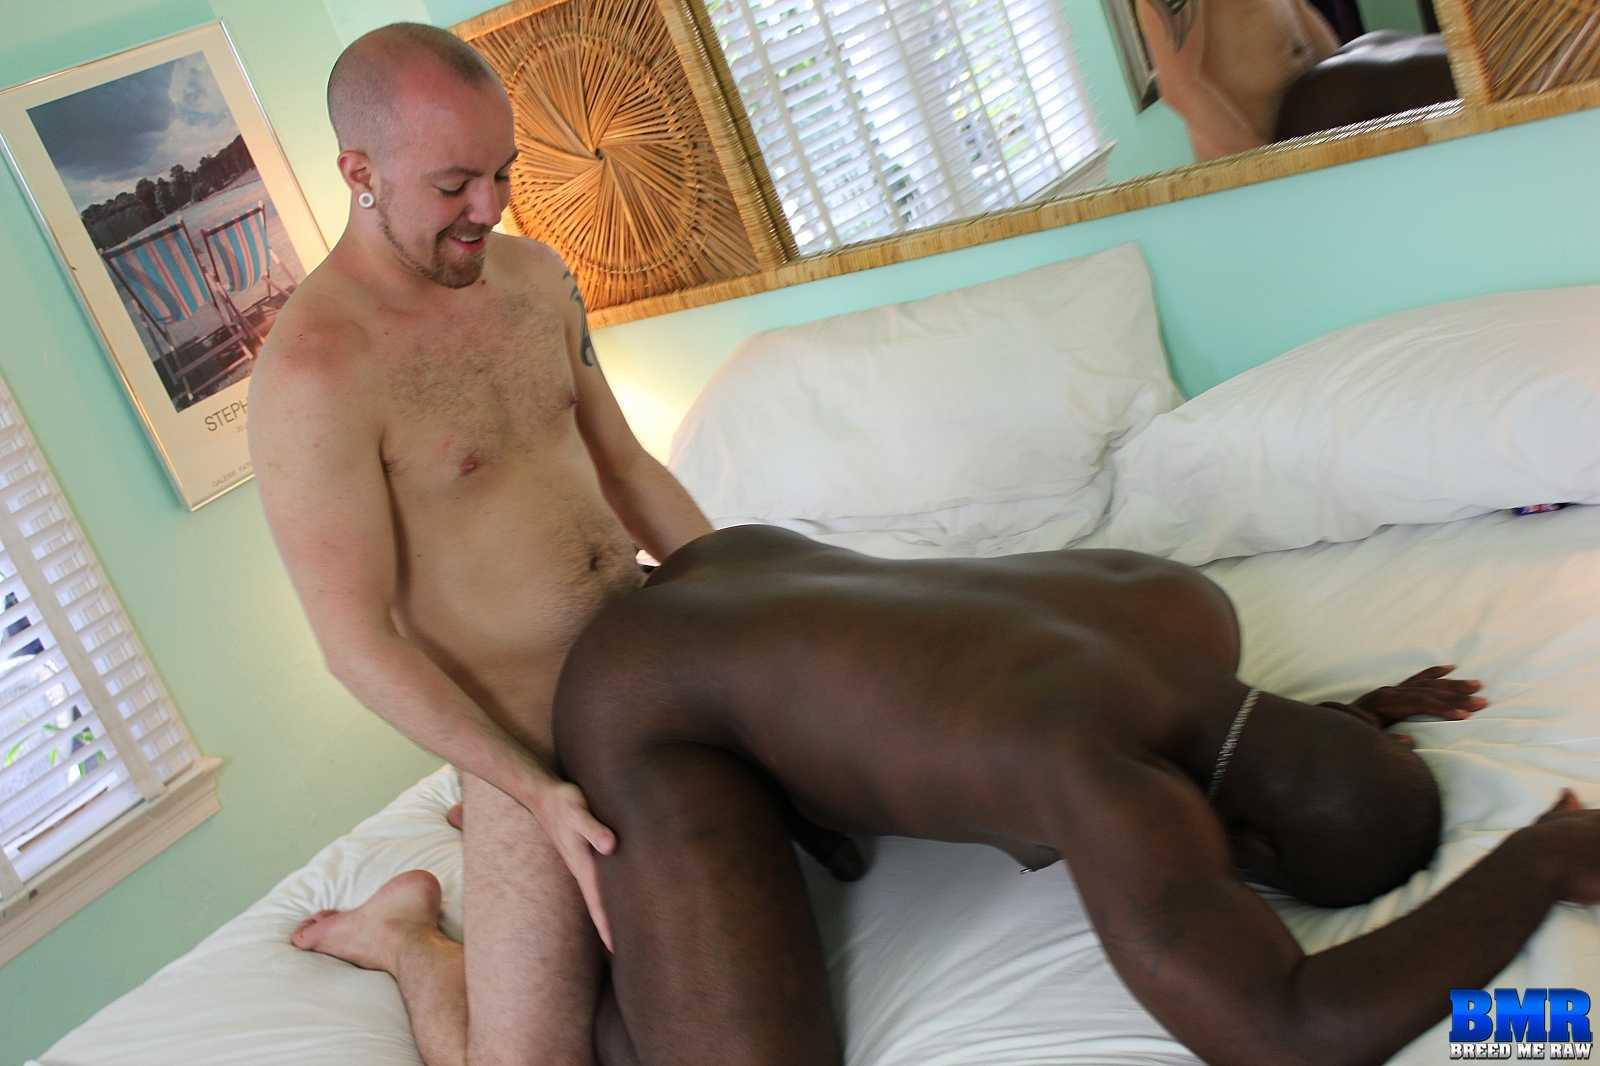 Breed Me Raw Daemon Sadi and Lex Antoine Interracial Bareback Fucking Big Black Cock Amateur Gay Porn 13 Amateur Interracial Bareback Flip Flop Fucking With Huge Uncut Cocks